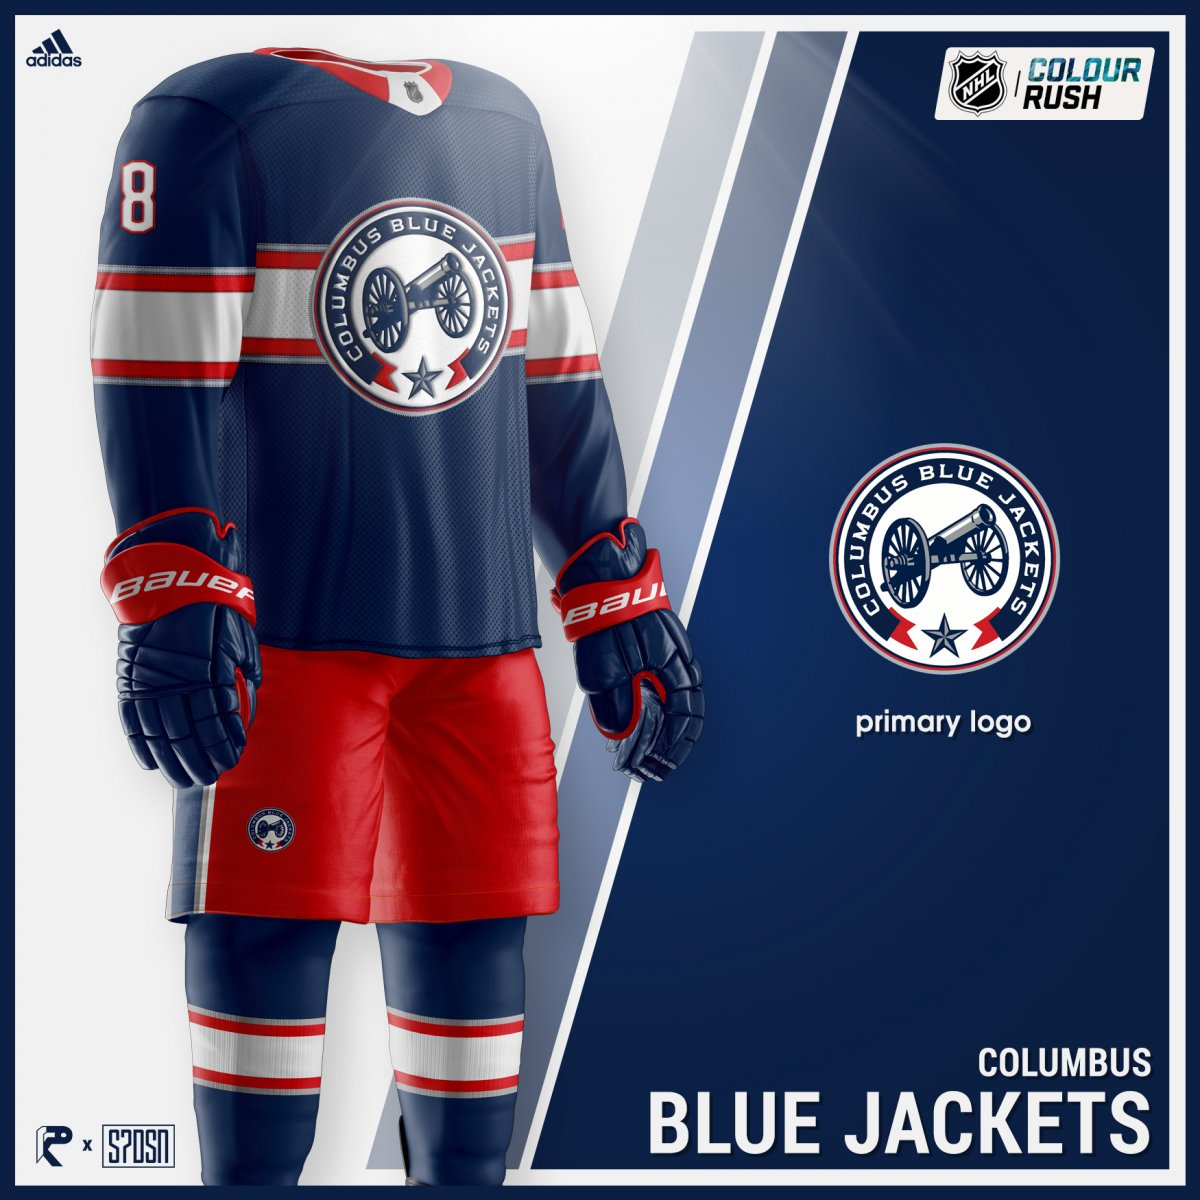 new products 1f432 e7921 The Columbus Blue Jackets Color Rush Jerseys, Presented by ...